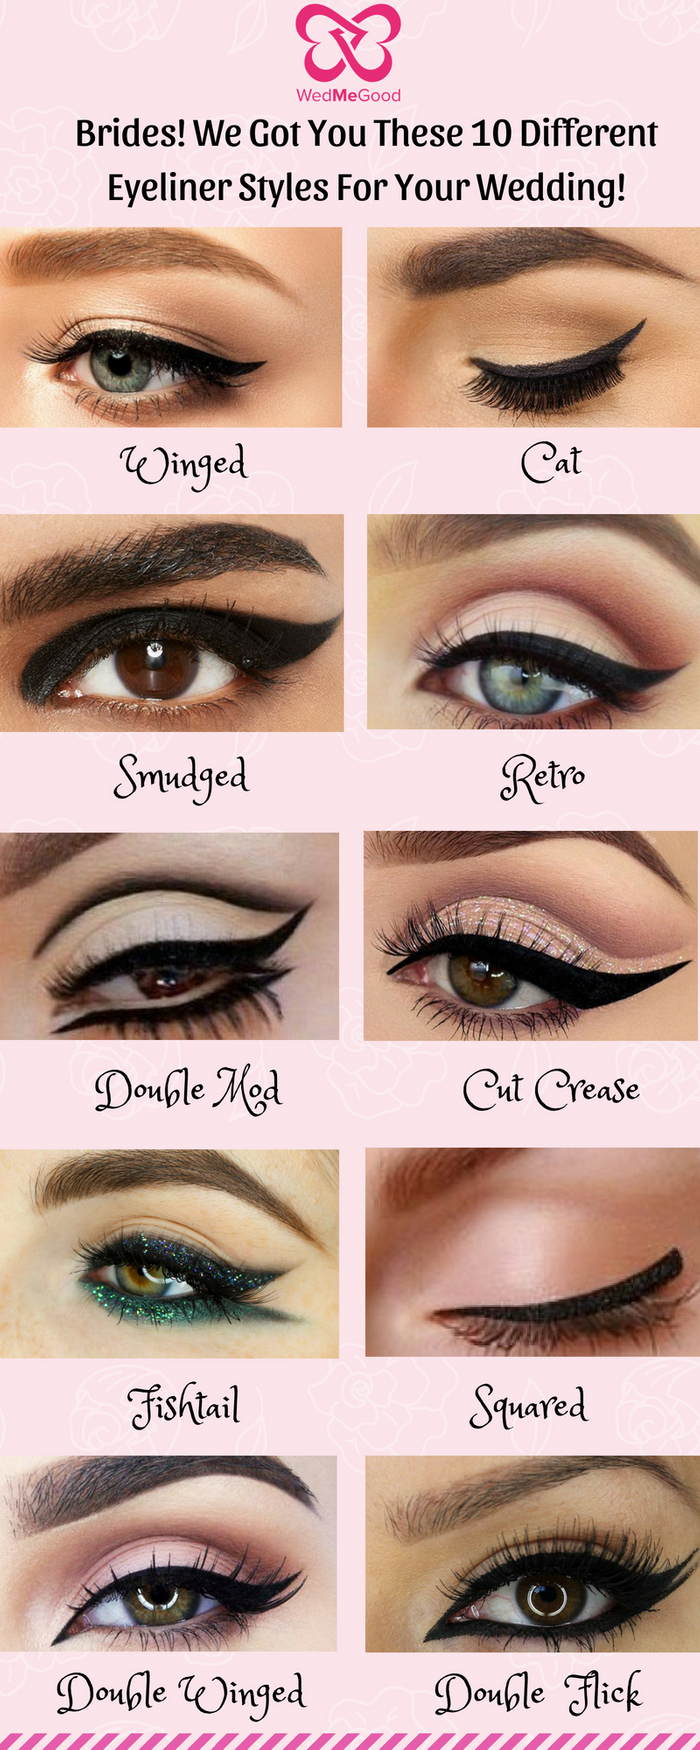 Photo of Be it a Winged or a Cat Eyeliner! We Got You These 10 Different Eyeliner Styles for Your Wedding!